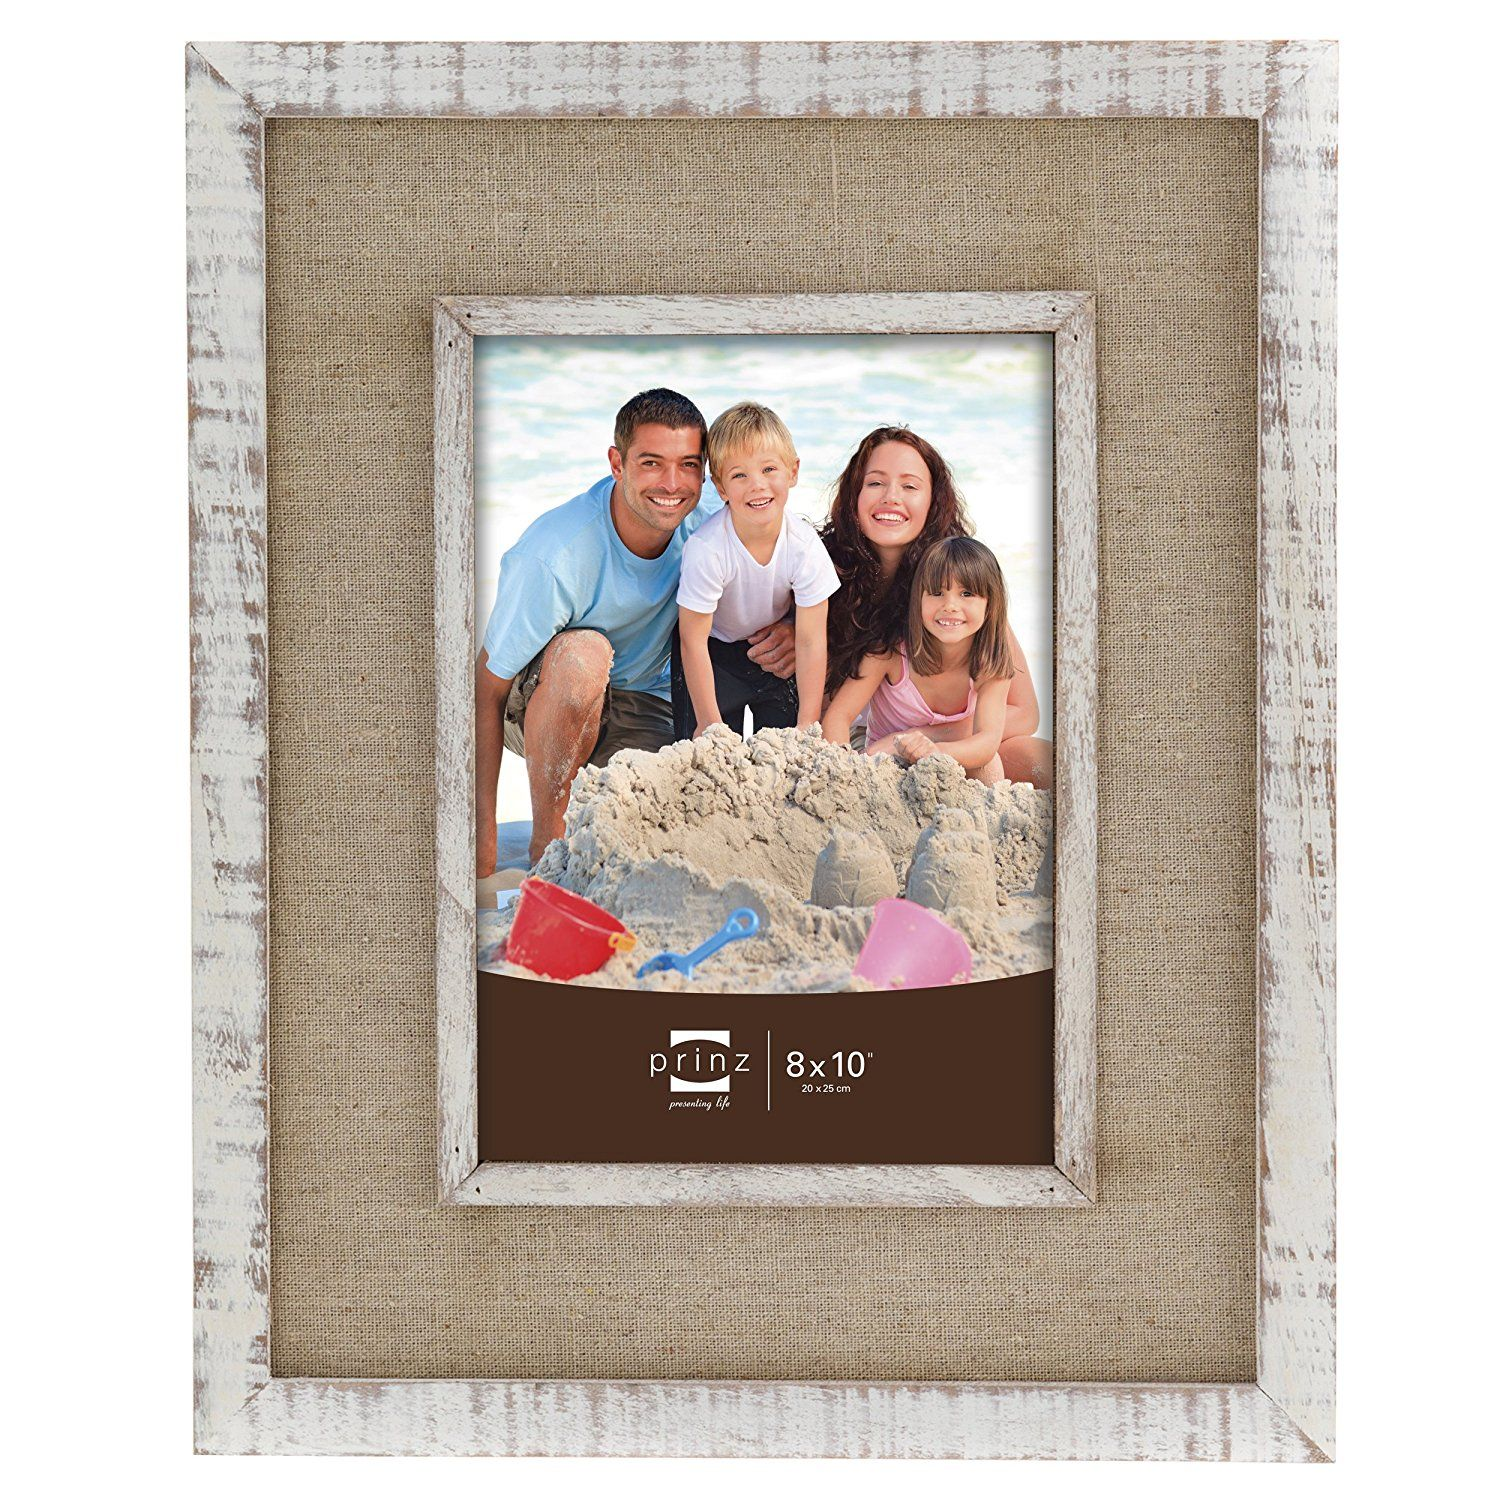 Prinz Shore Side Distressed White Frame With Beige Linen Border 8 By 10 Inch Want To Know More Click On The White Distressed Frame Distressed White Frame